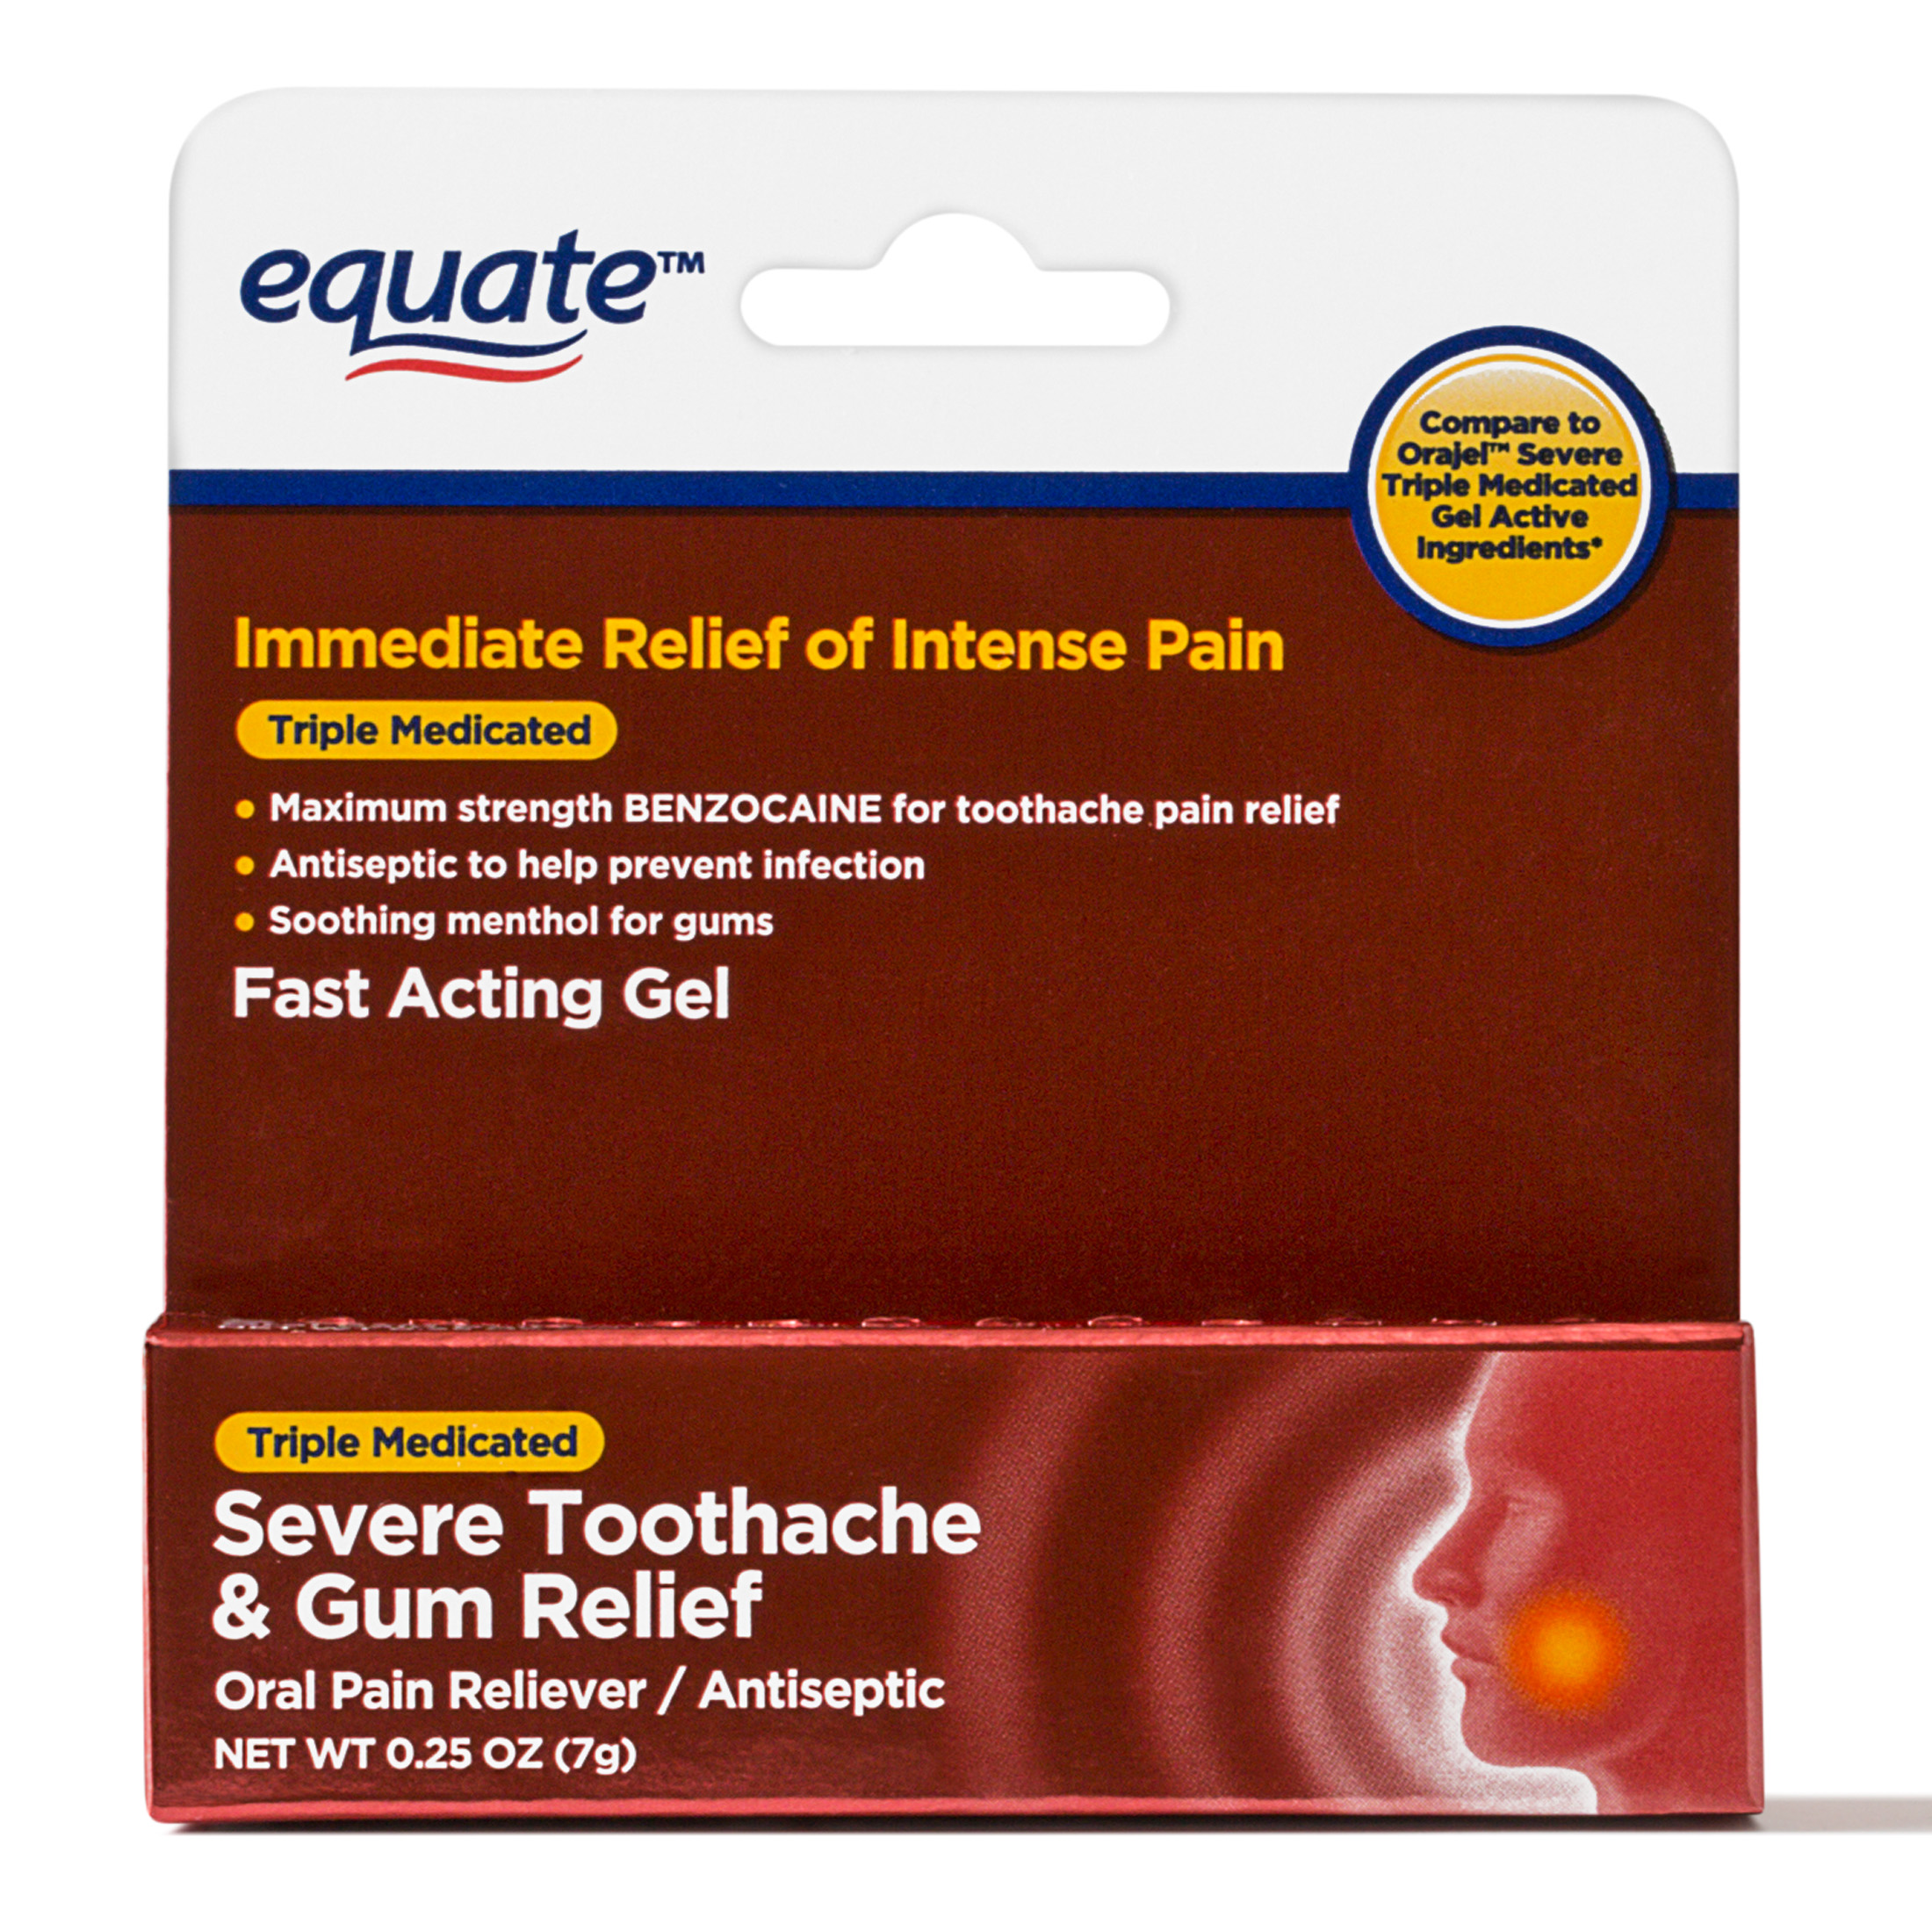 Equate Severe Toothache & Gum Relief/Antiseptic Gel, 0.25 Oz